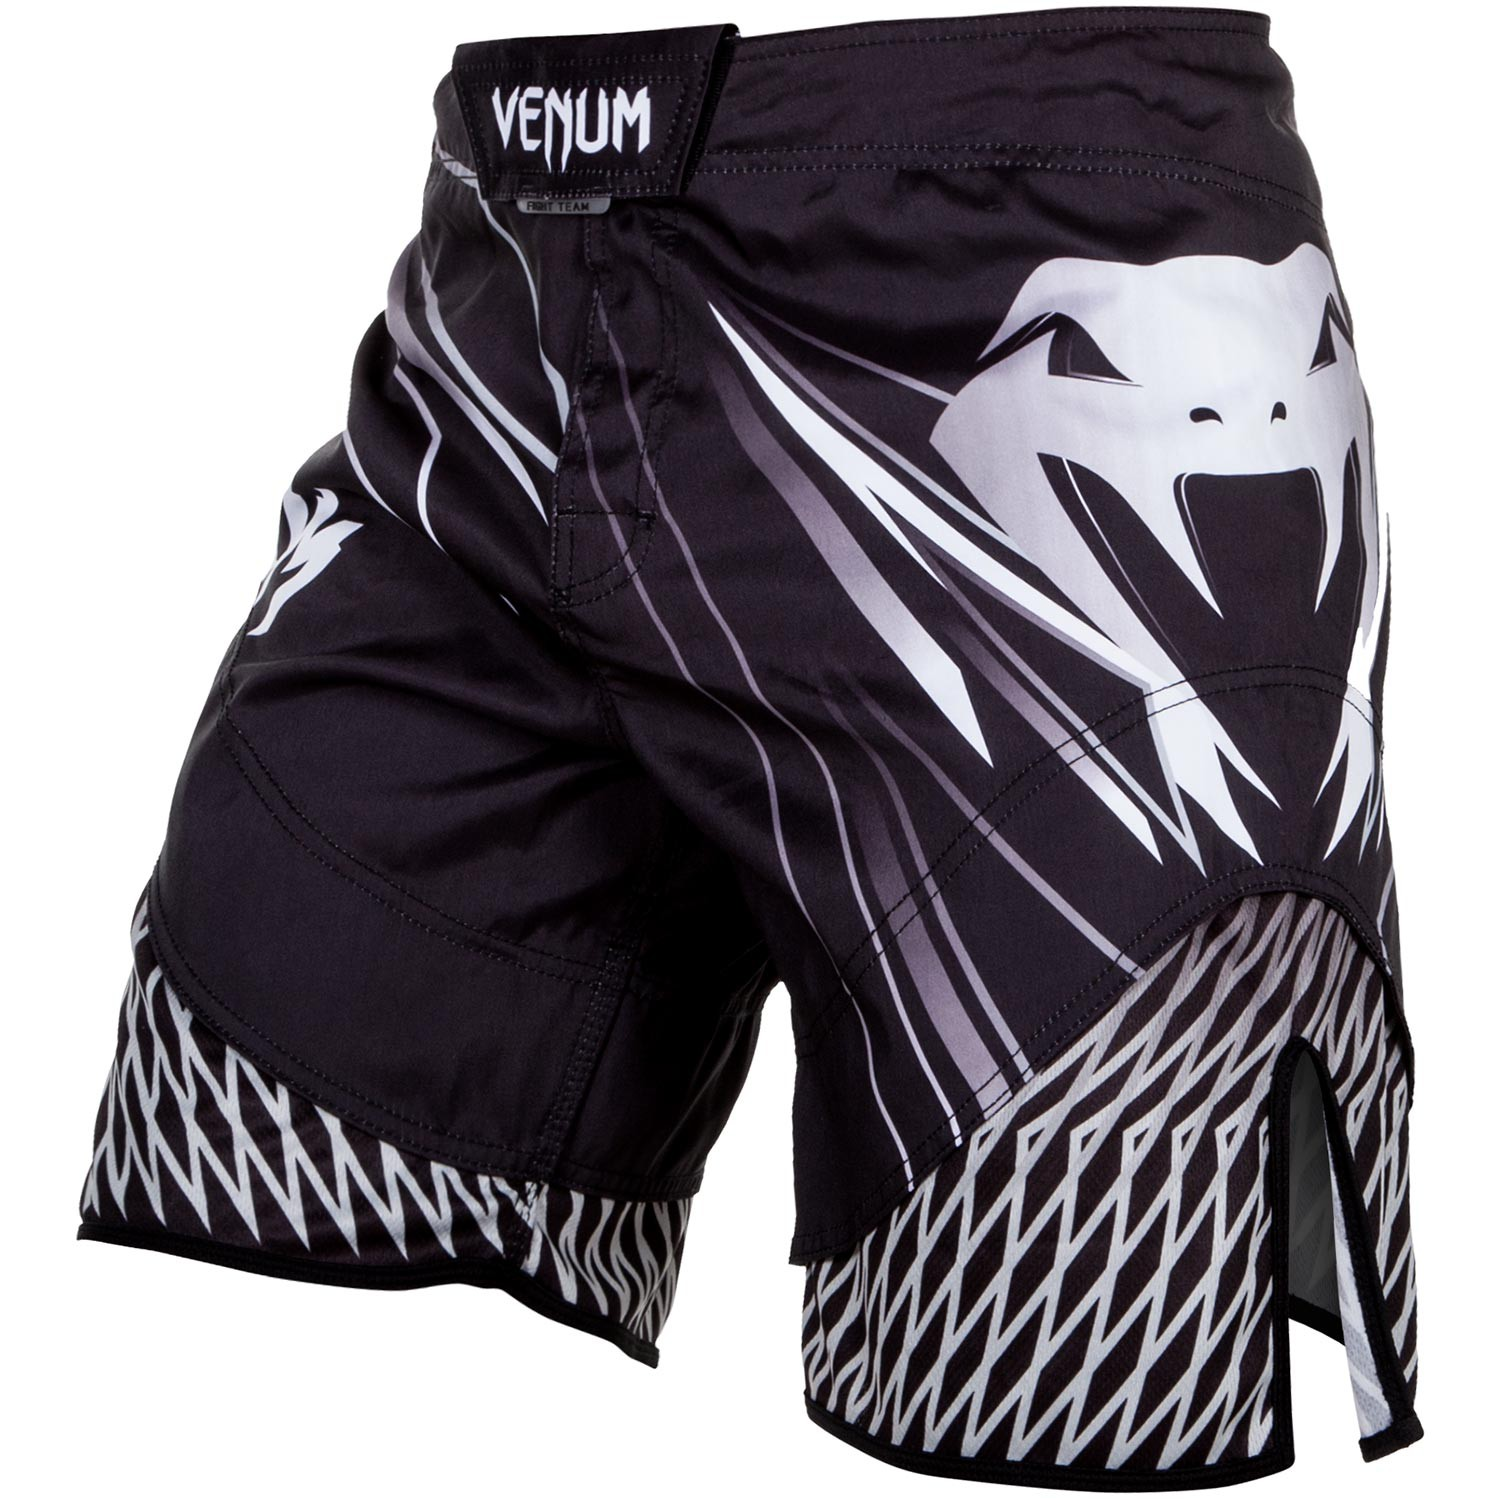 Шорты Venum Shockwave 4.0 Fightshorts Black/Grey, 4405_bk_gy  - купить со скидкой